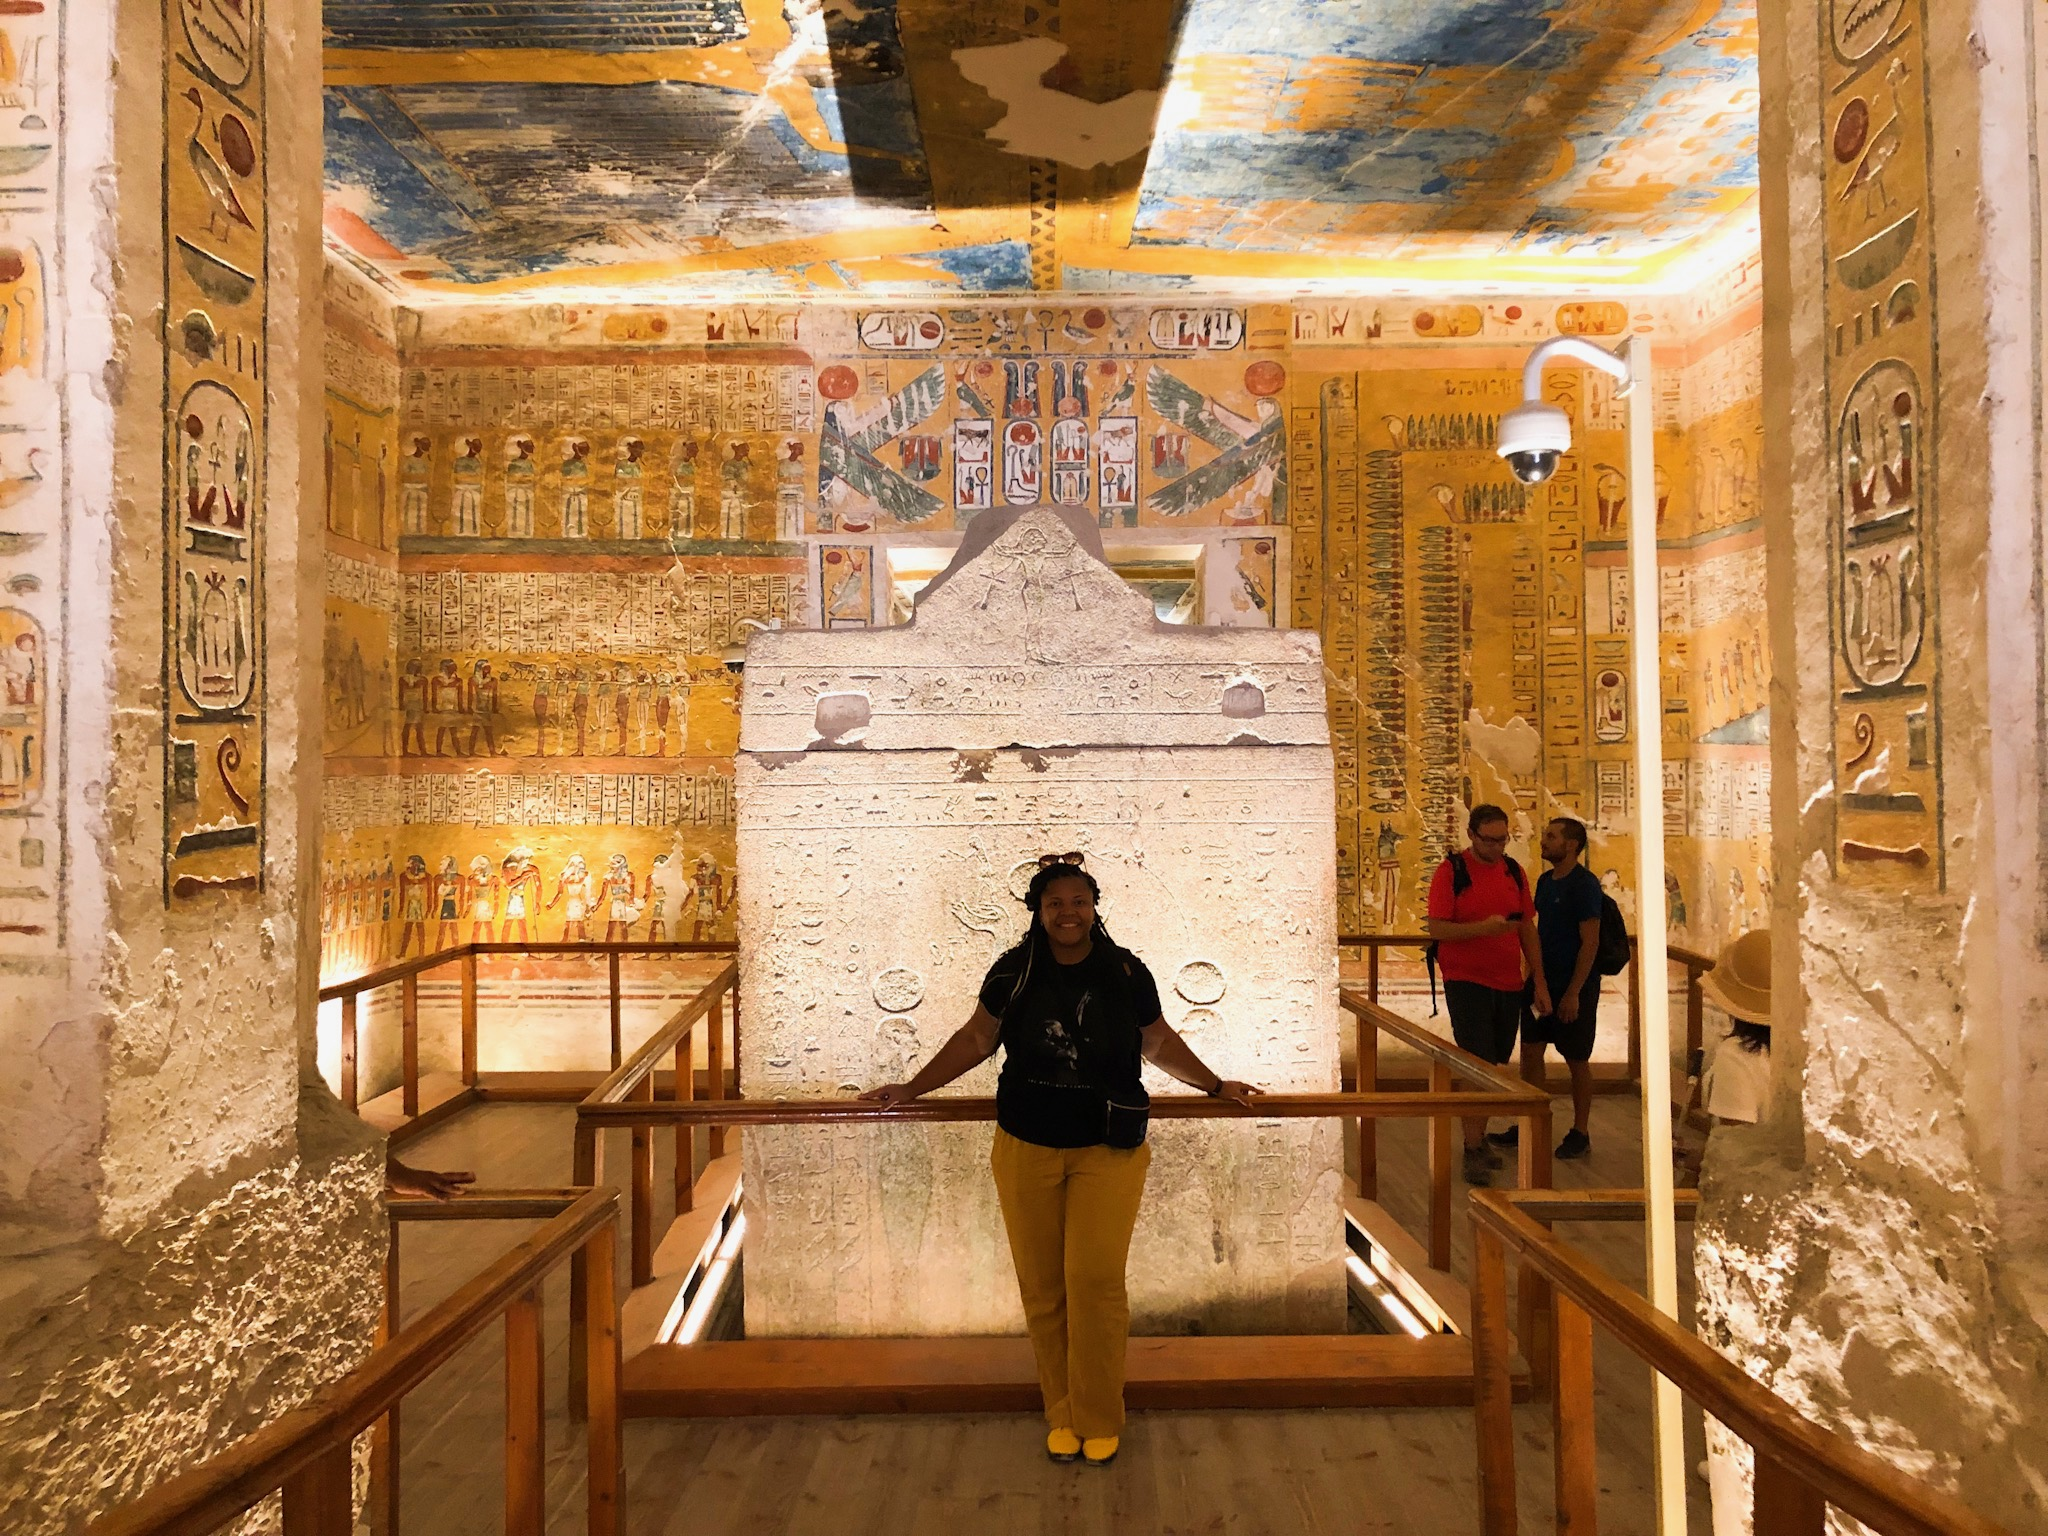 Inside one of the Pharaoh tombs at the Valley of the Kings.